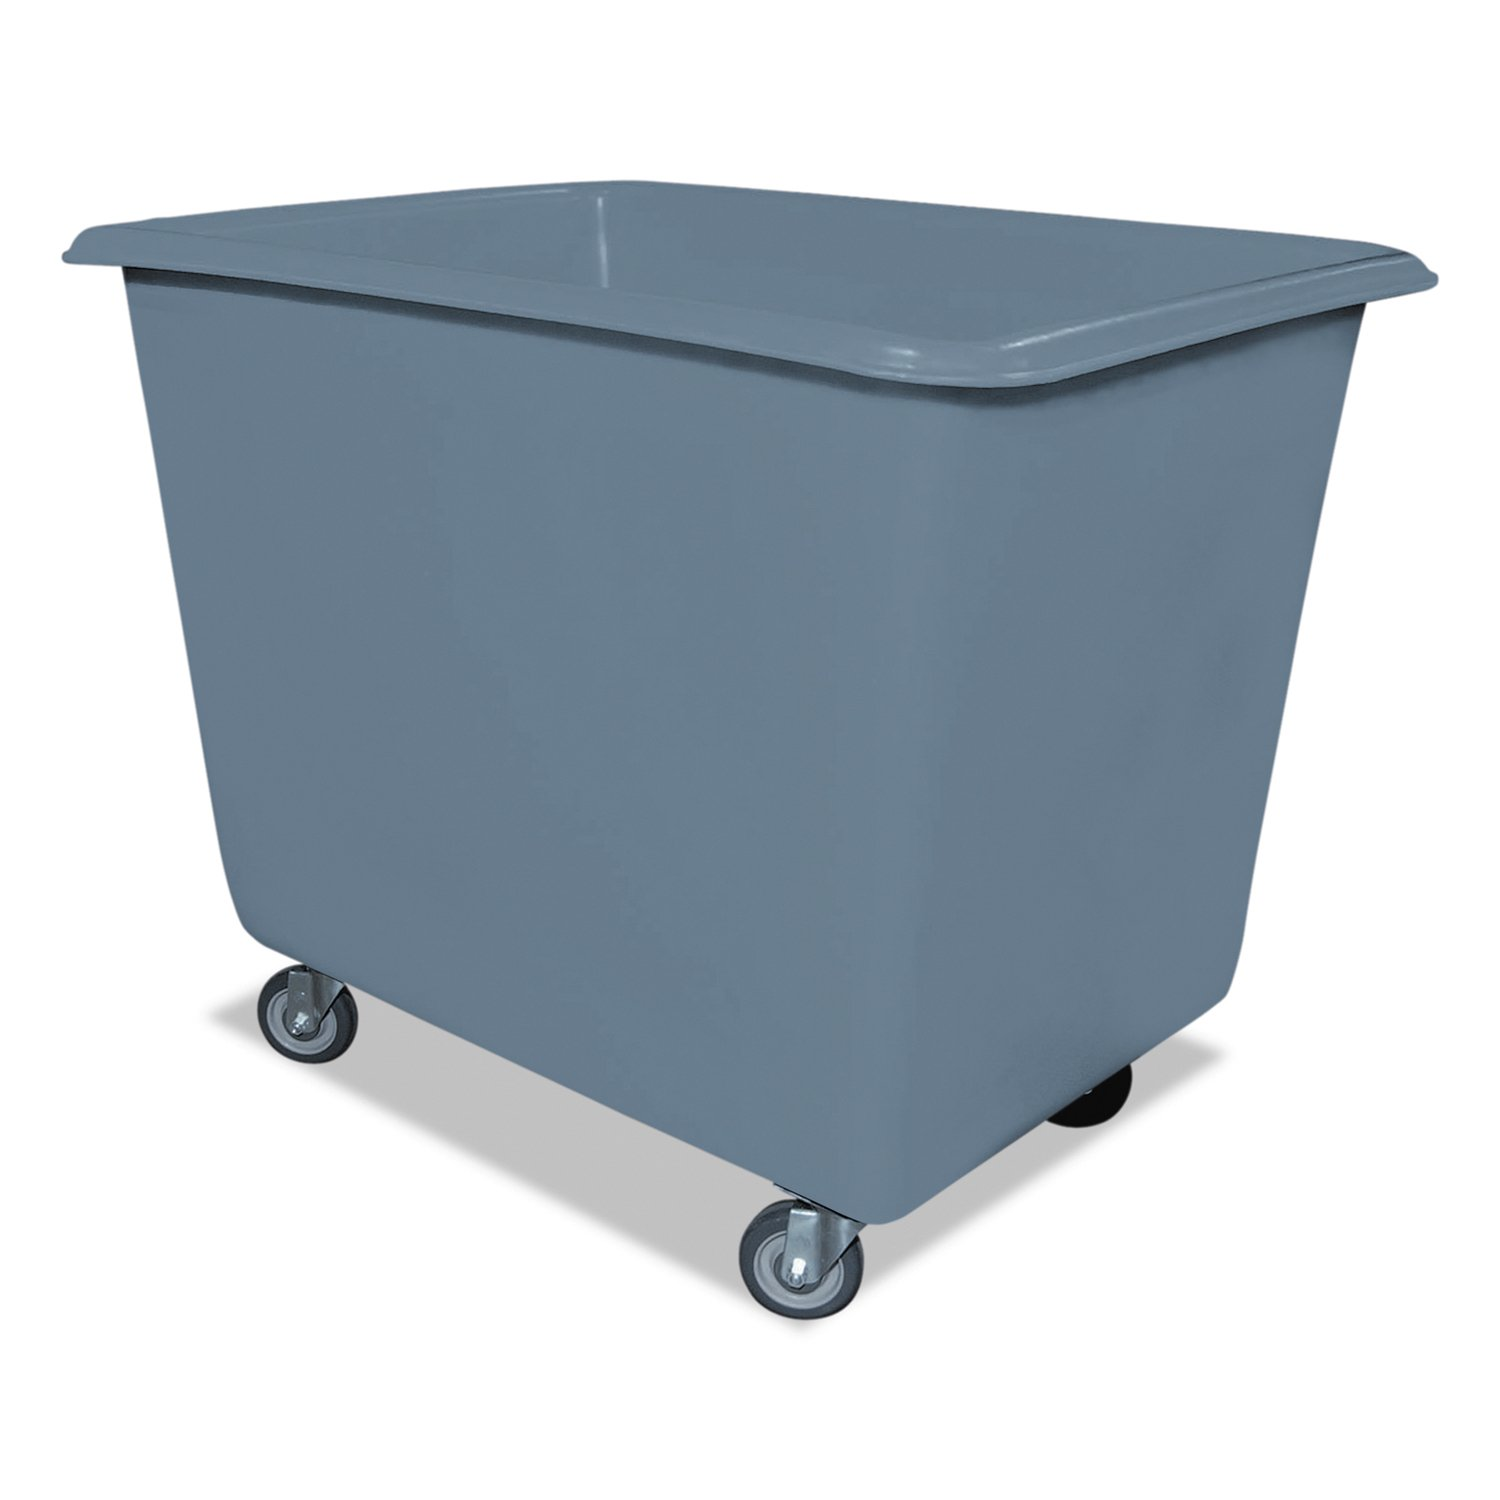 Royal Basket Trucks R6GRXPGA4UN 6 Bushel Poly Truck with Galvanized Steel Base, 24'' x 34'' x 26'', 800 lb. Capacity, Gray